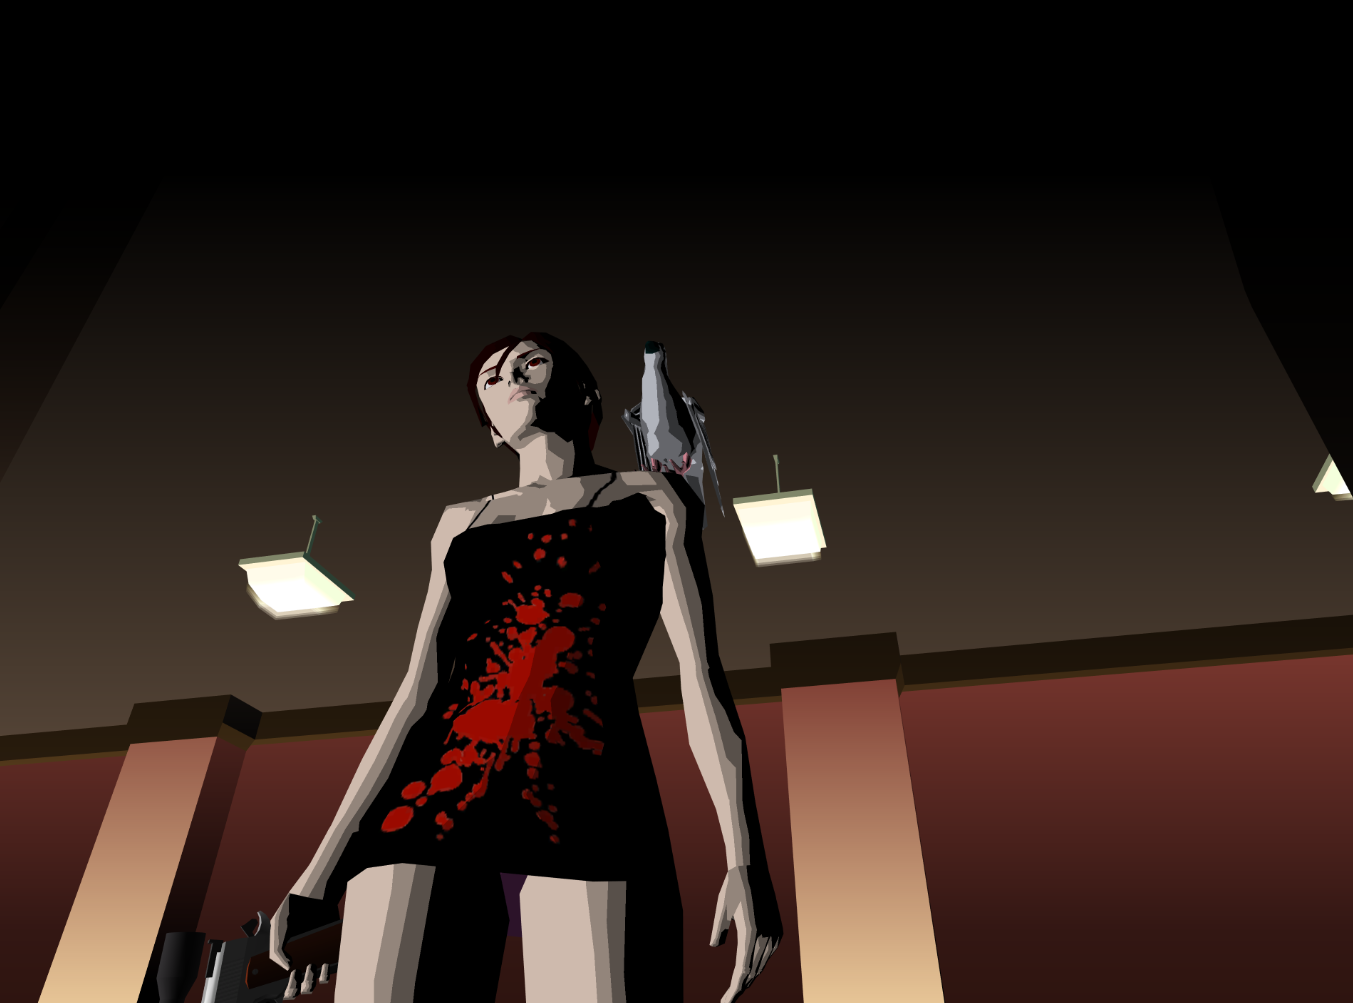 killer 7 kaede smith